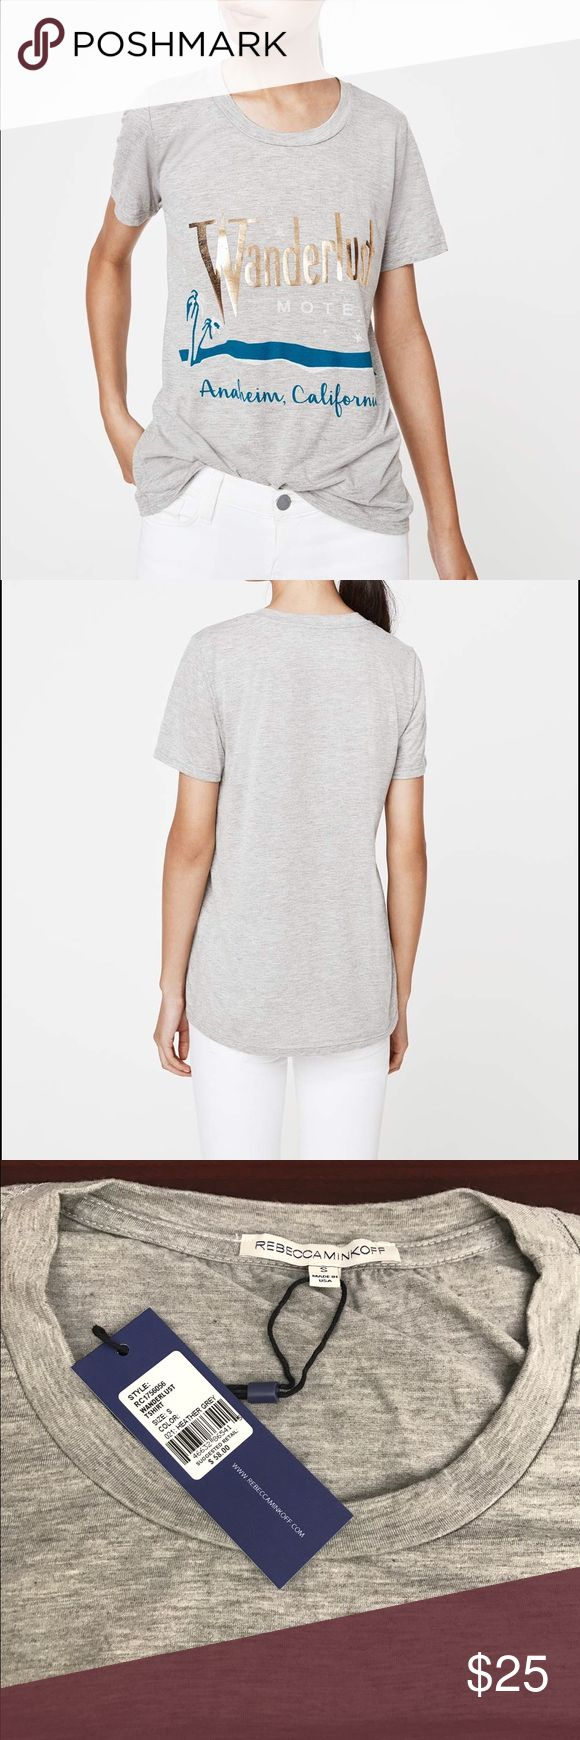 Rebecca Minkoff Wanderlust Tee DESCRIPTION #Humblebrag. Our tees are so cozy. The best part—they're put together enough that you can wear them pretty much everywhere. And this one features a Southwestern-inspired graphic for a little something extra.  Color: HEATHER GREY Size: S 65% Polyester, 35% Rayon Machine wash cold Rebecca Minkoff Tops Tees - Short Sleeve